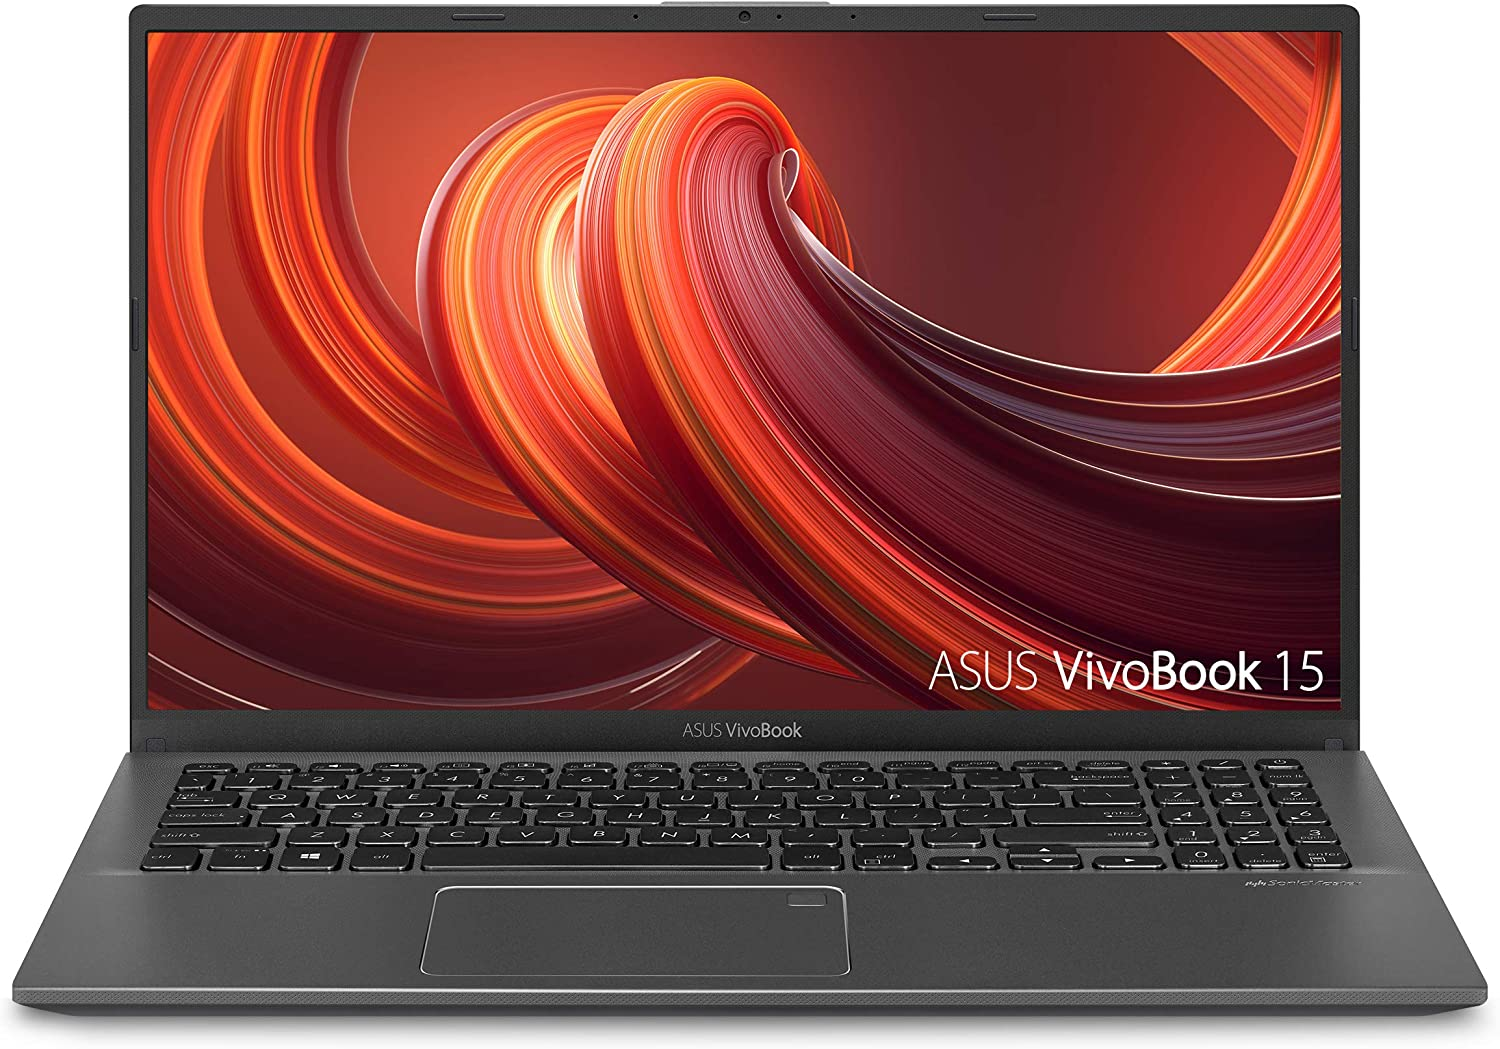 "Asus Vivobook 15 Thin and Light 15.6"" FHD, AMD Quad Core R3-3200U CPU, 8GB DDR4 RAM, 128G SSD, AMD Radeon Vega 3 Graphics, Windows 10 in S Mode, F512DA-DB34, Slate Gray"